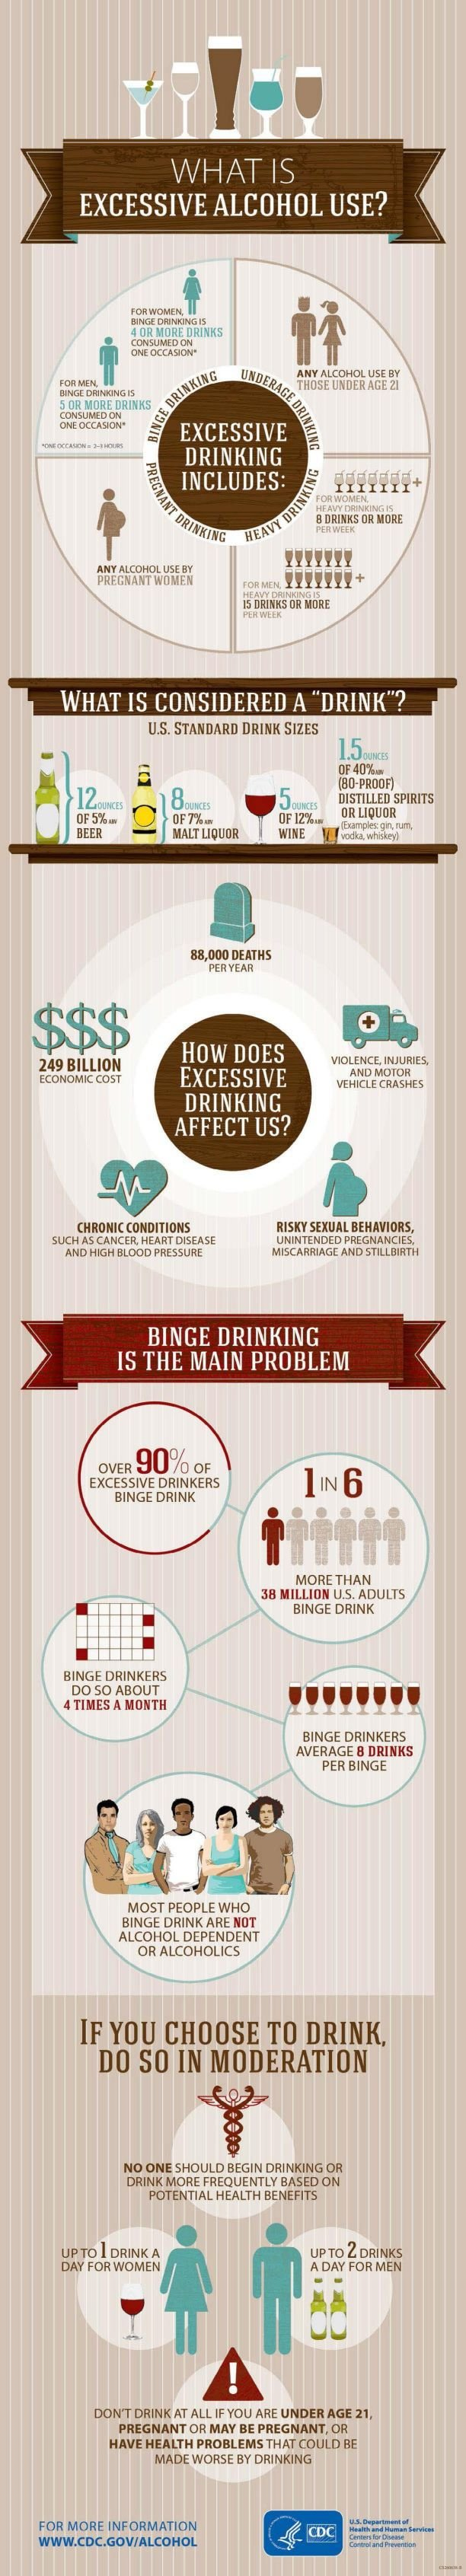 Excessive Alcohol Use